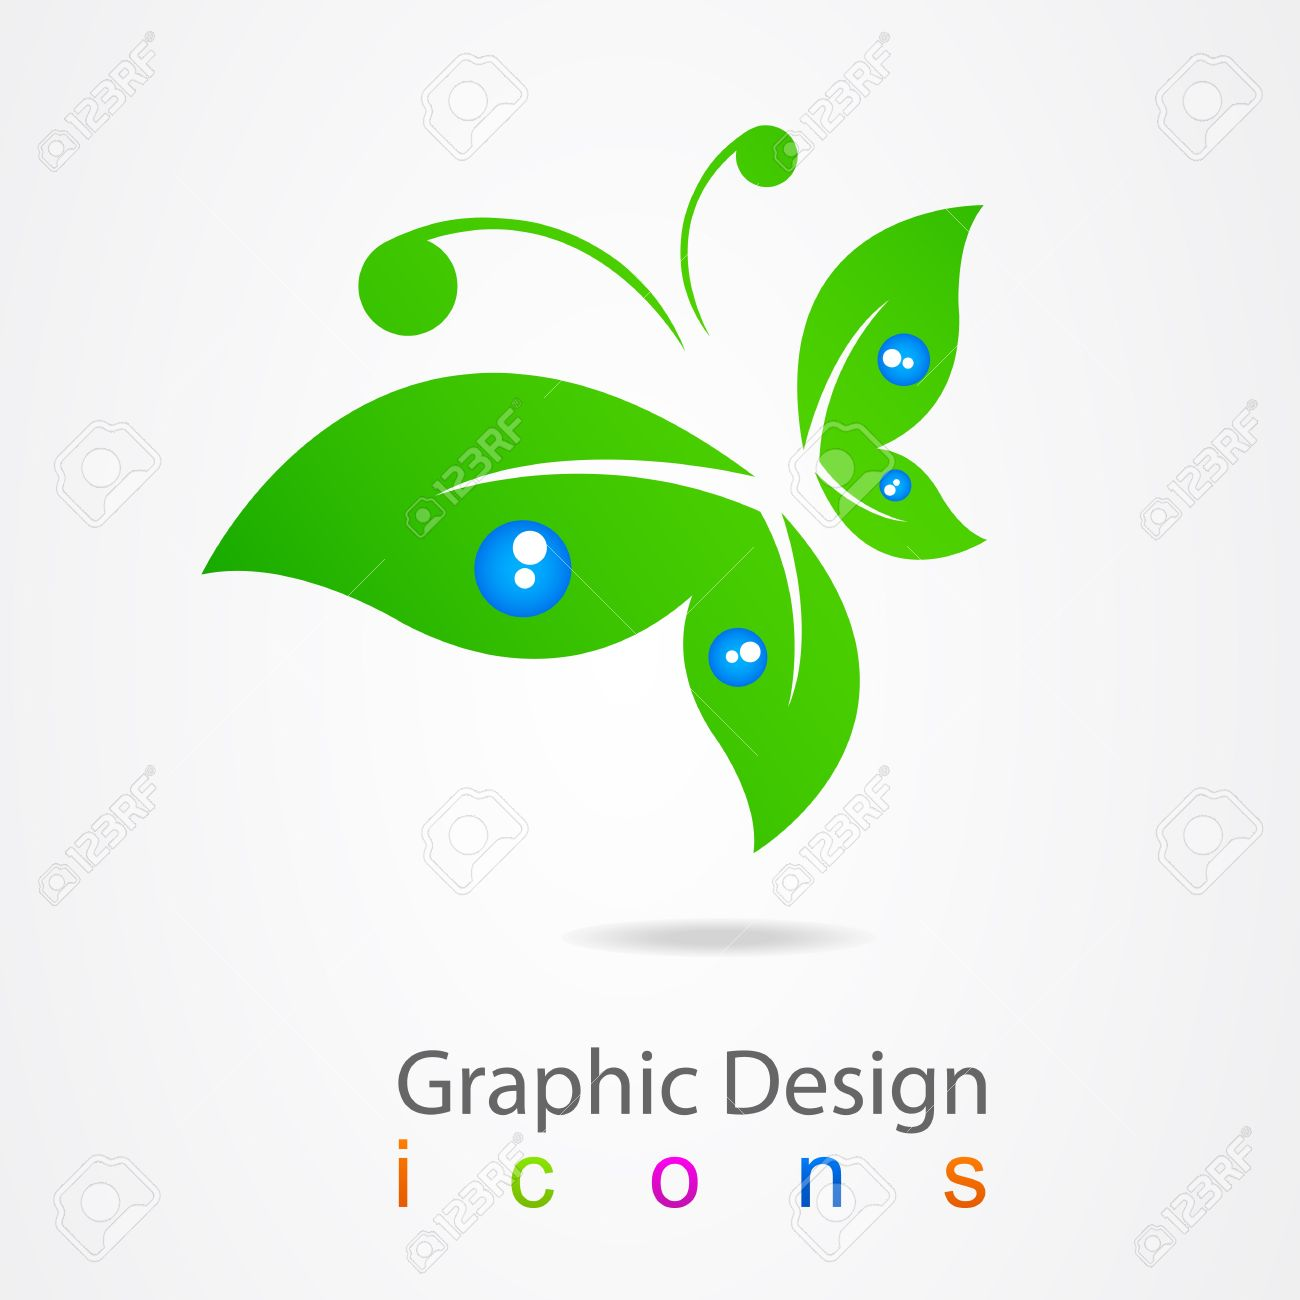 graphic design logo butterfly Stock Vector - 19556982